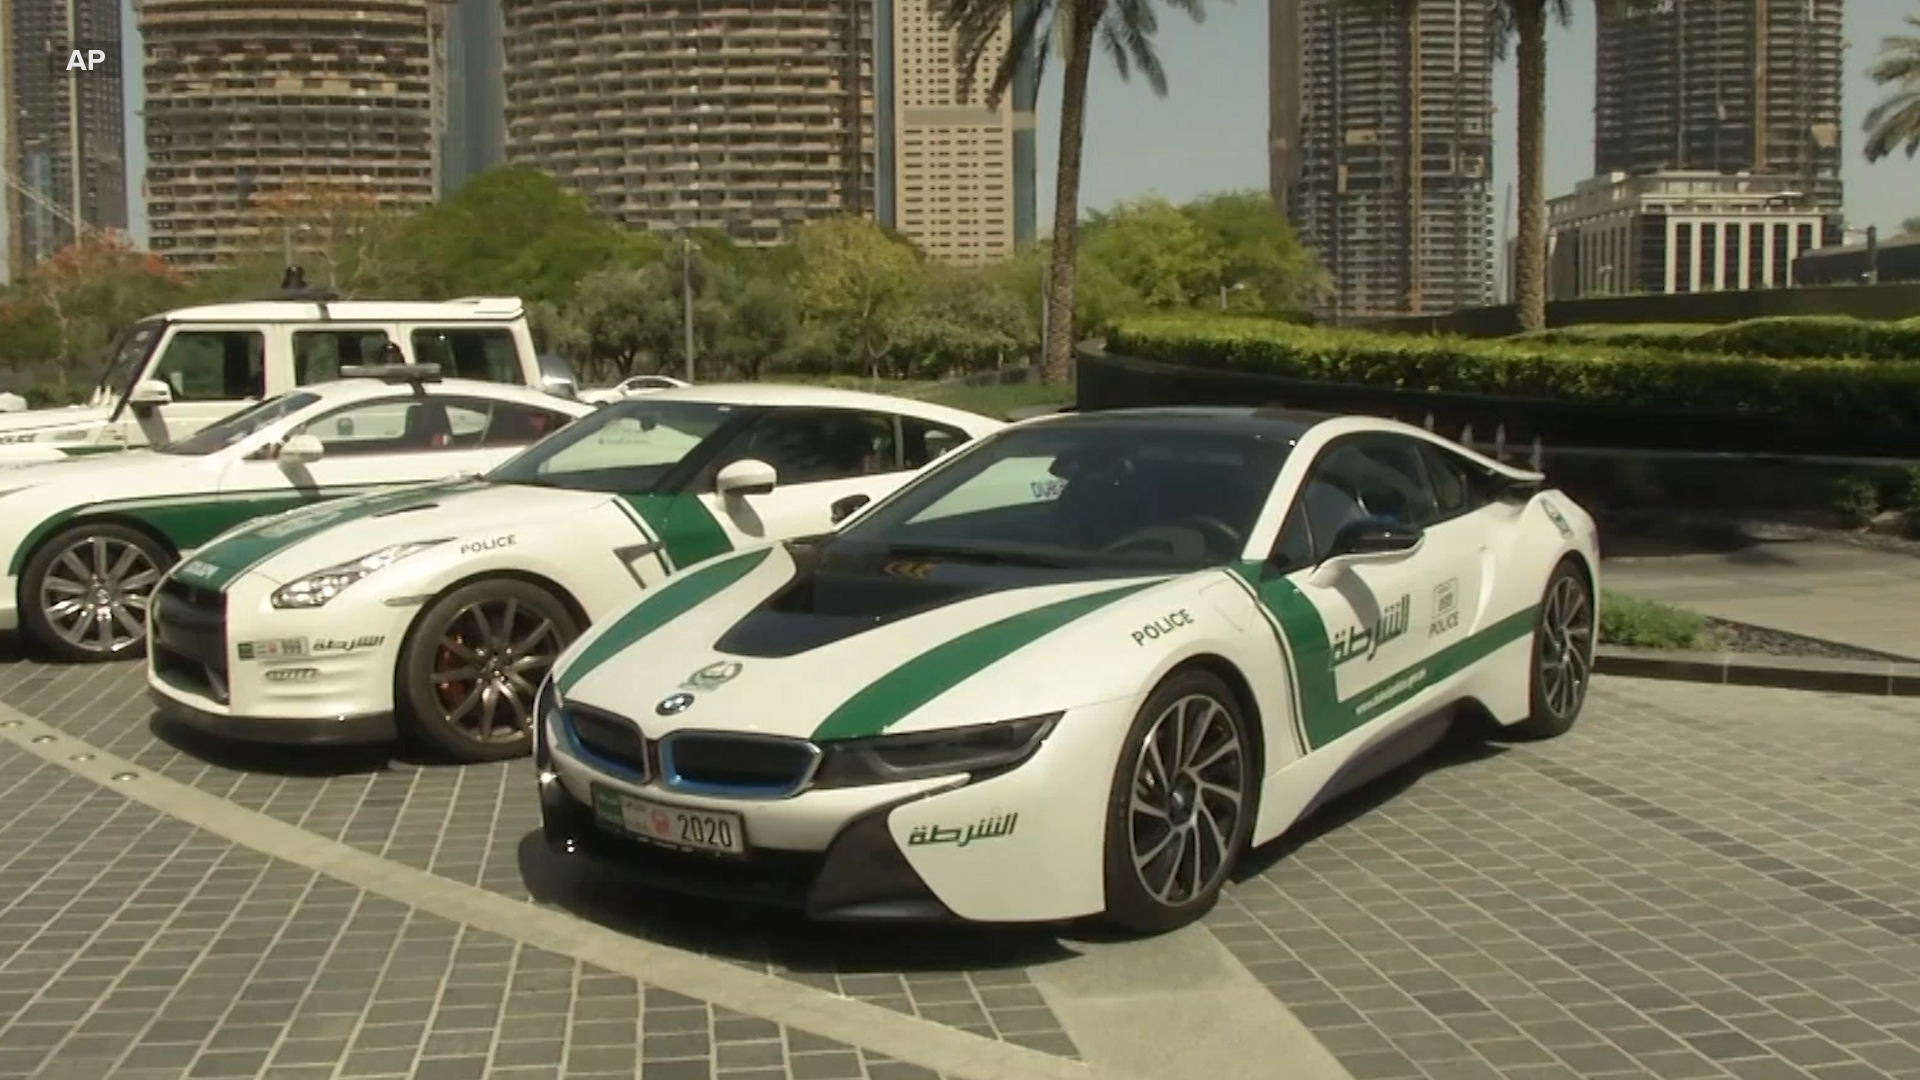 Dubai Now Uses Lamborghinis And Other Luxury Cars As Police Vehicles